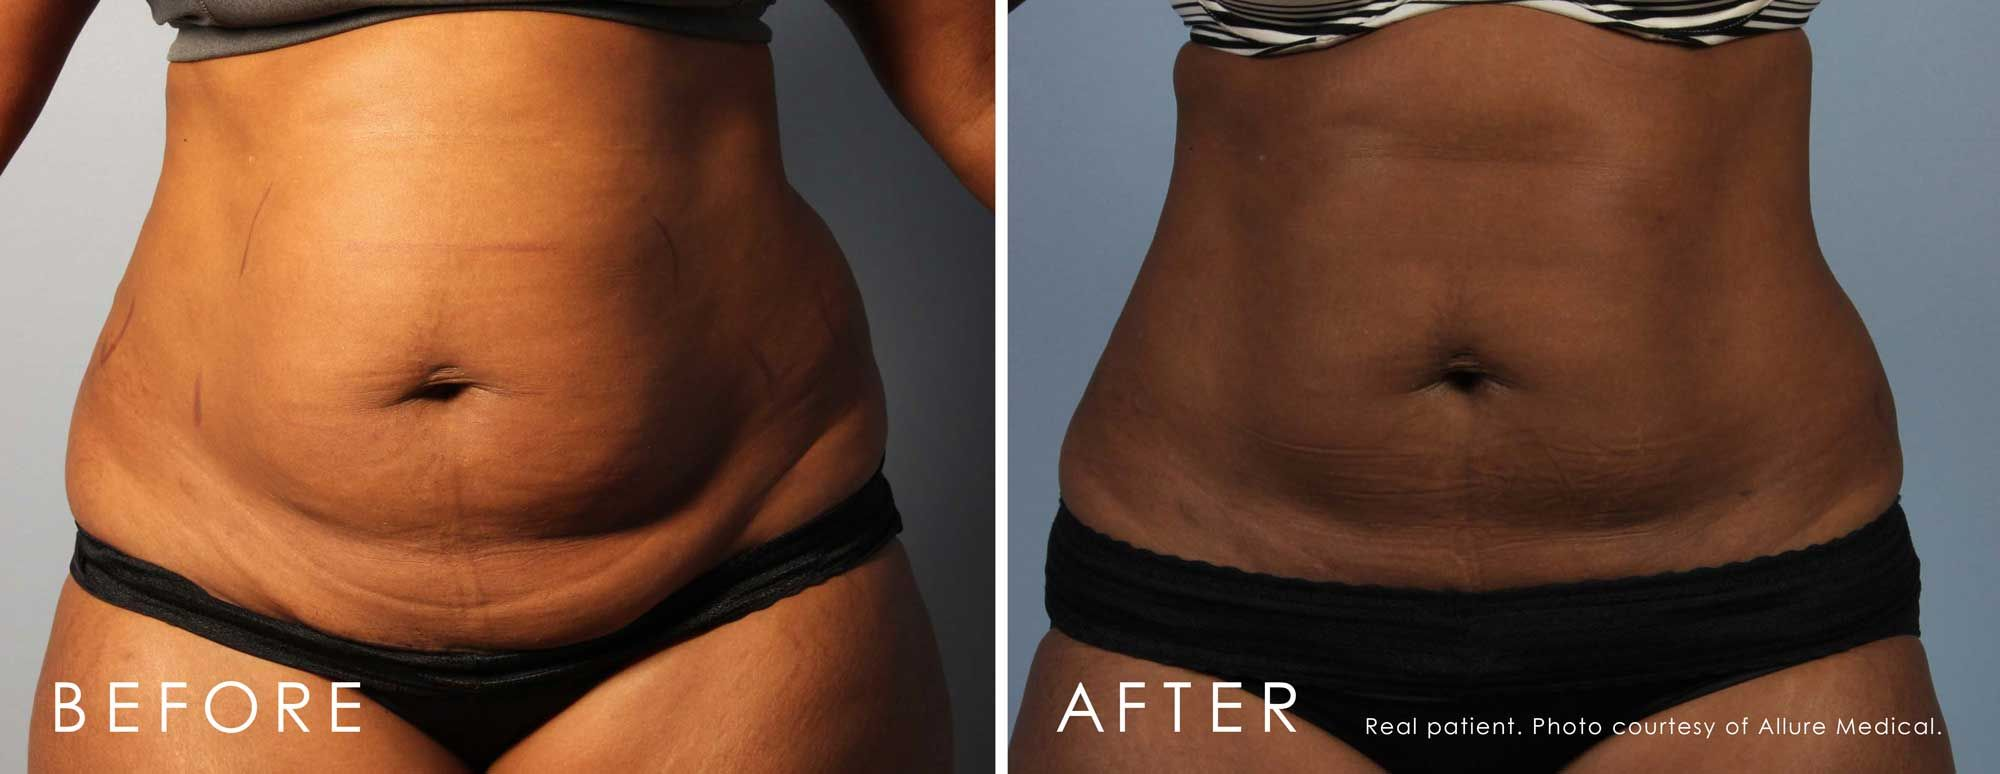 Before and After CoolSculpting® treatment #1